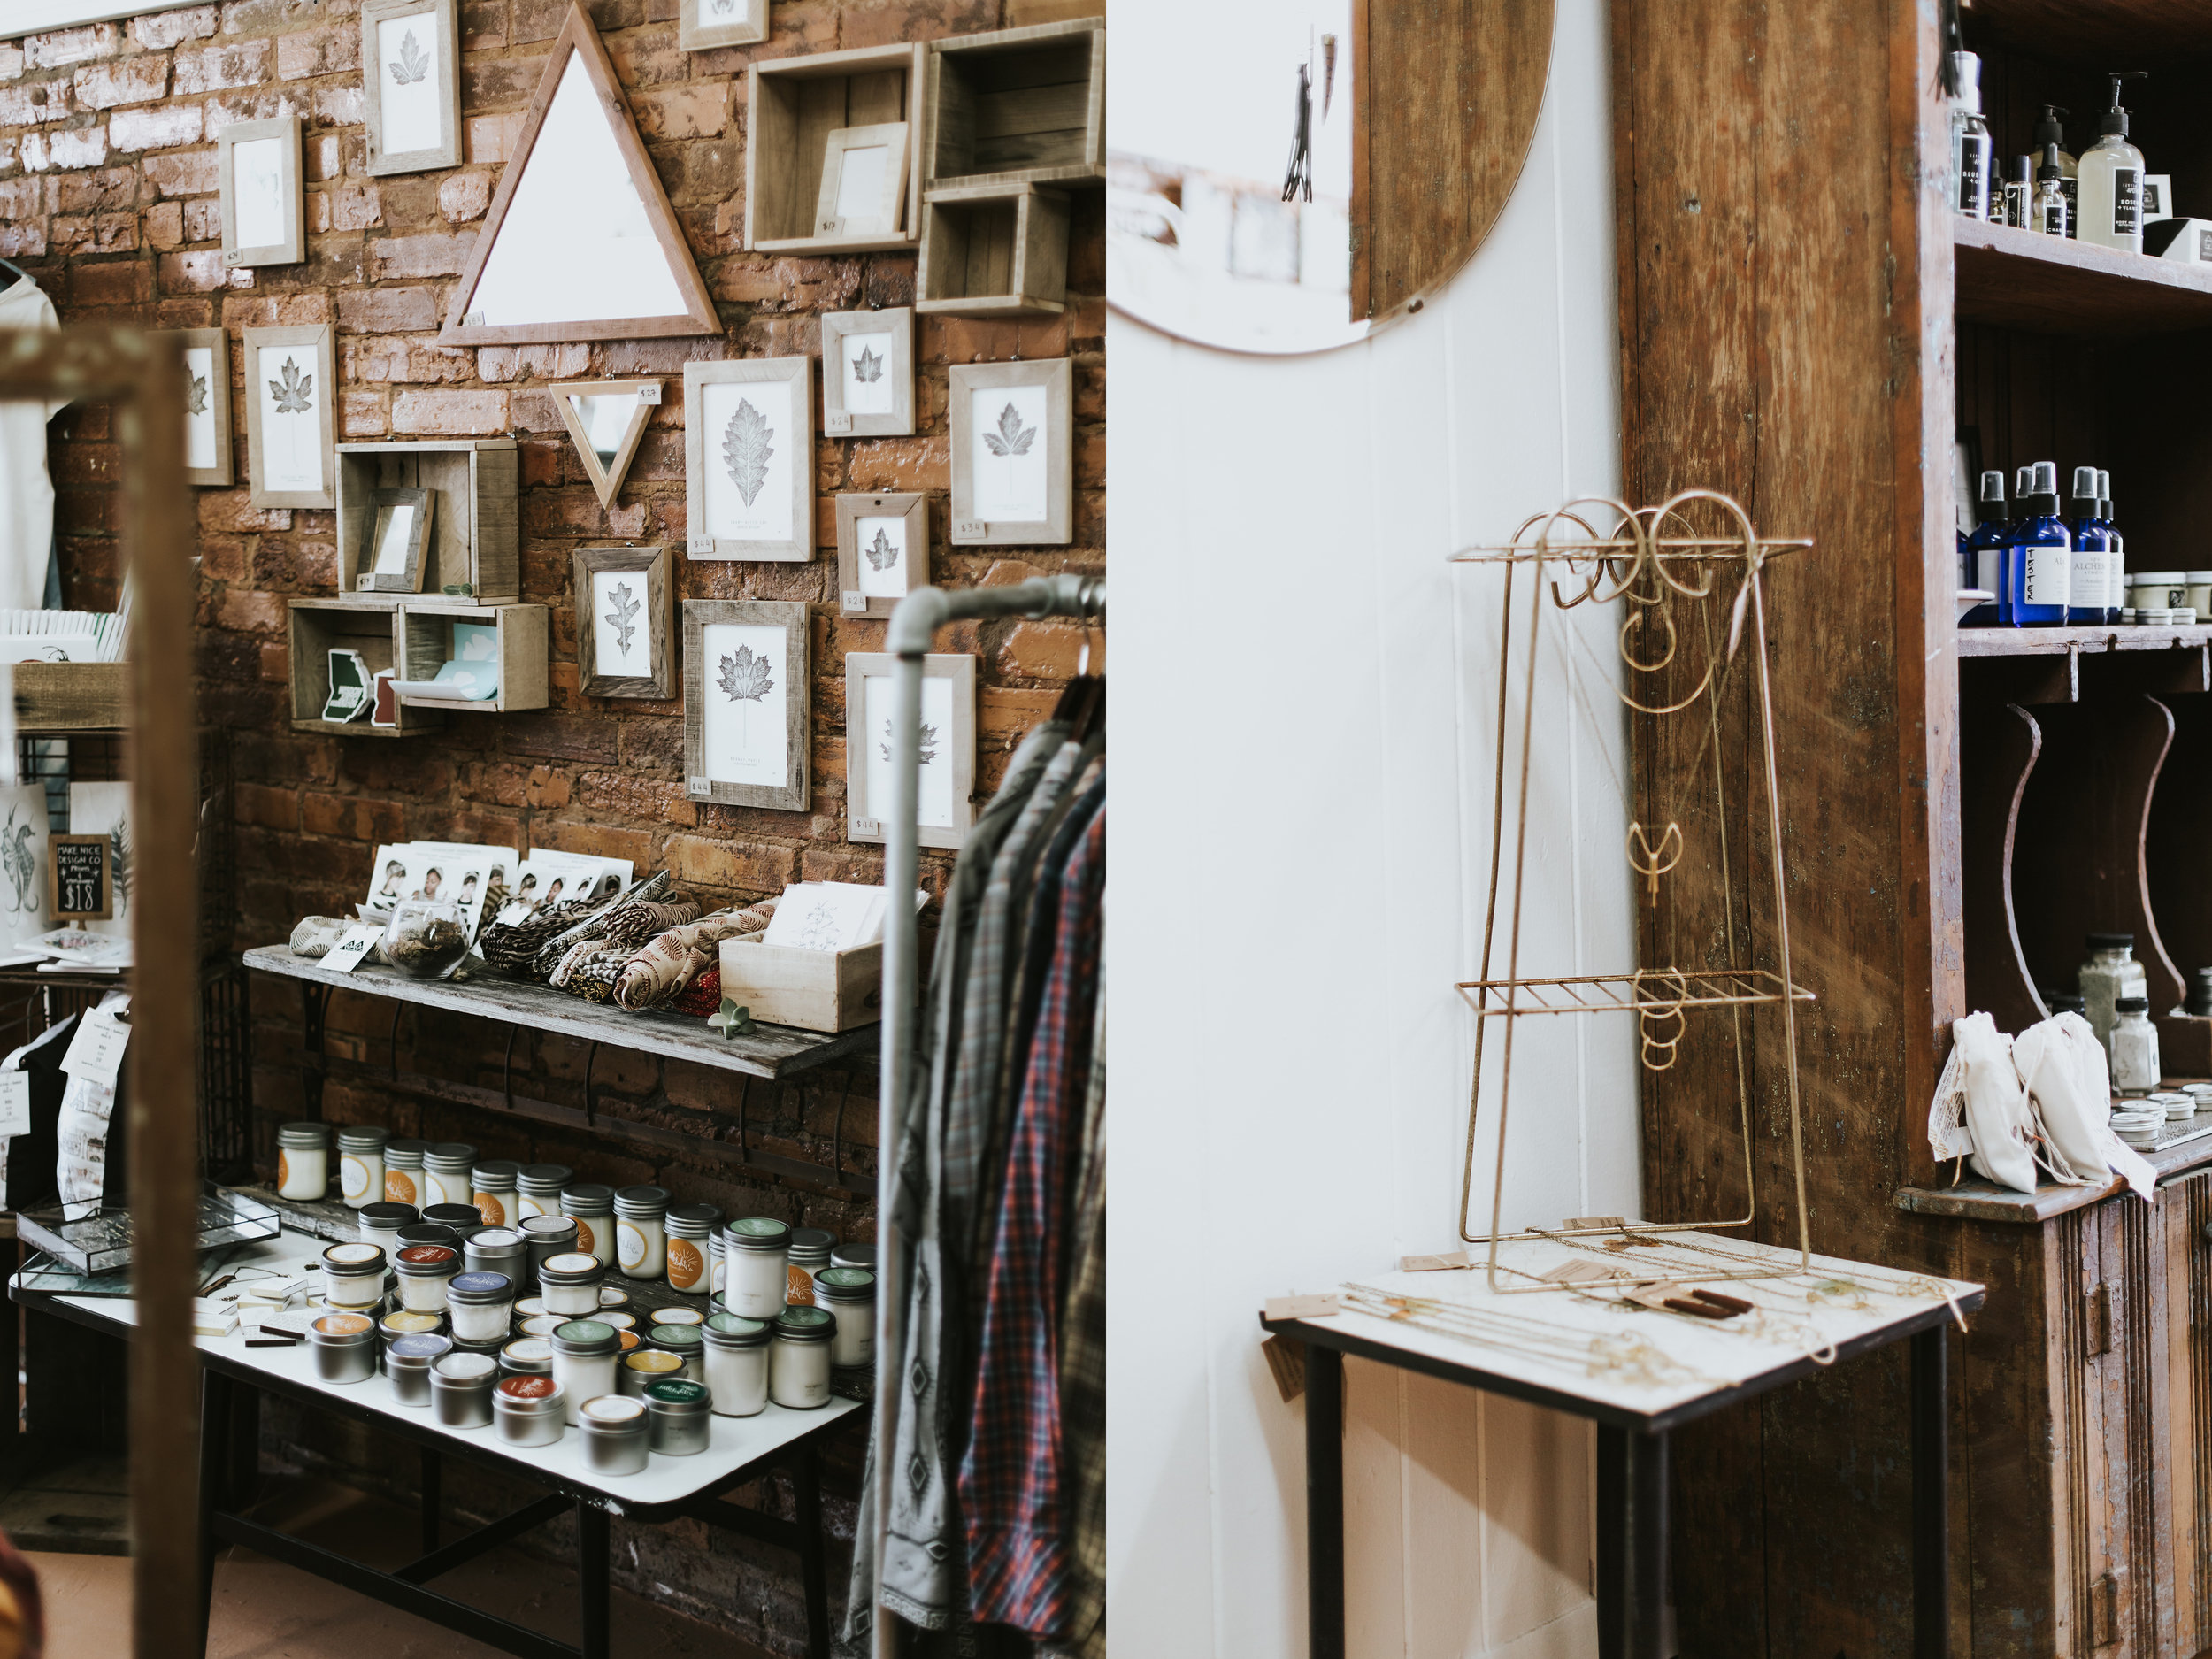 indie south shop-3.jpg